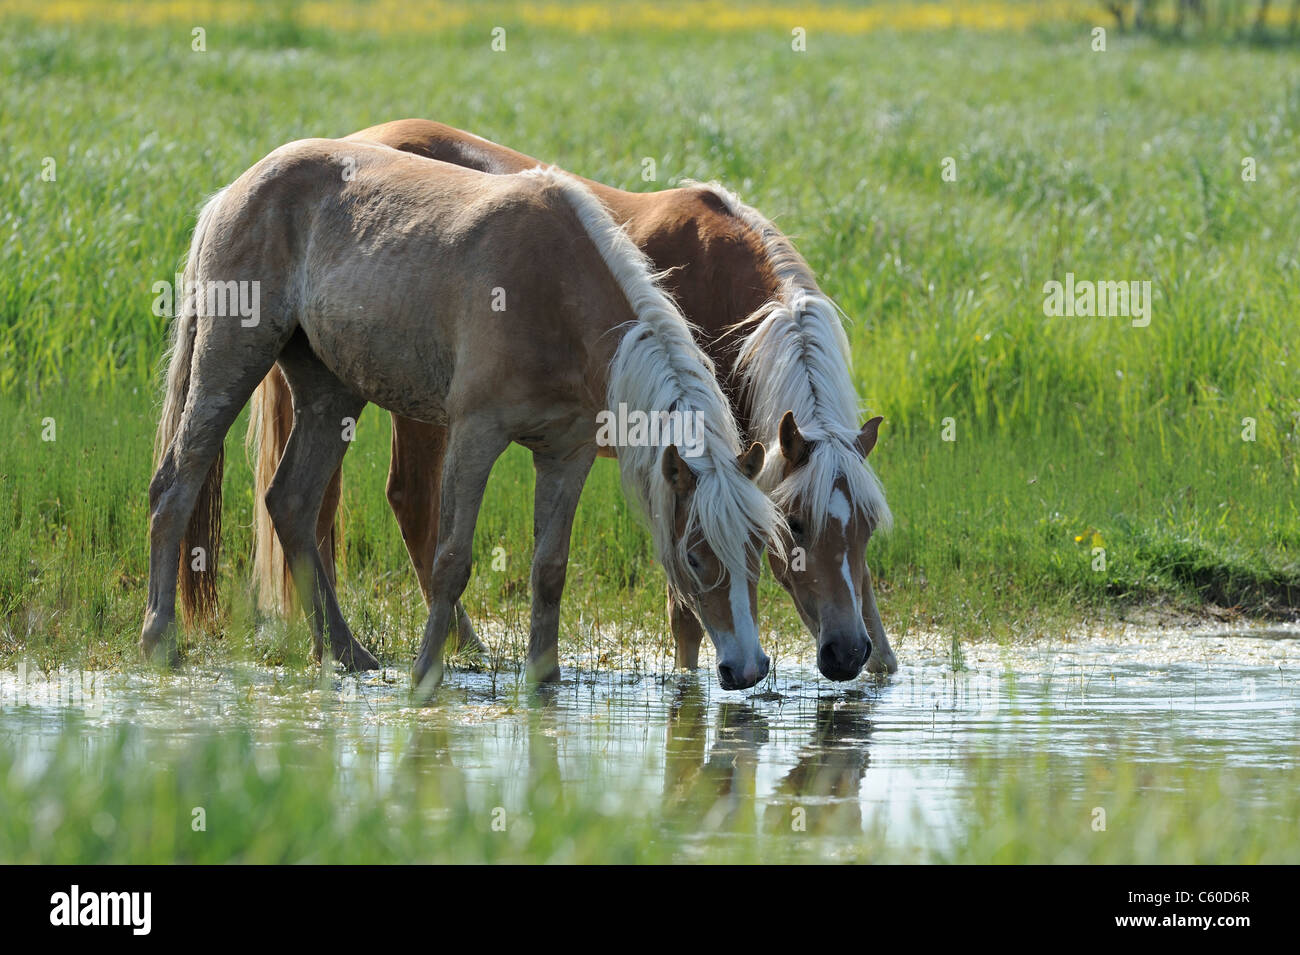 Haflinger Horse (Equus ferus caballus). Two young mares drinking from a pond. - Stock Image